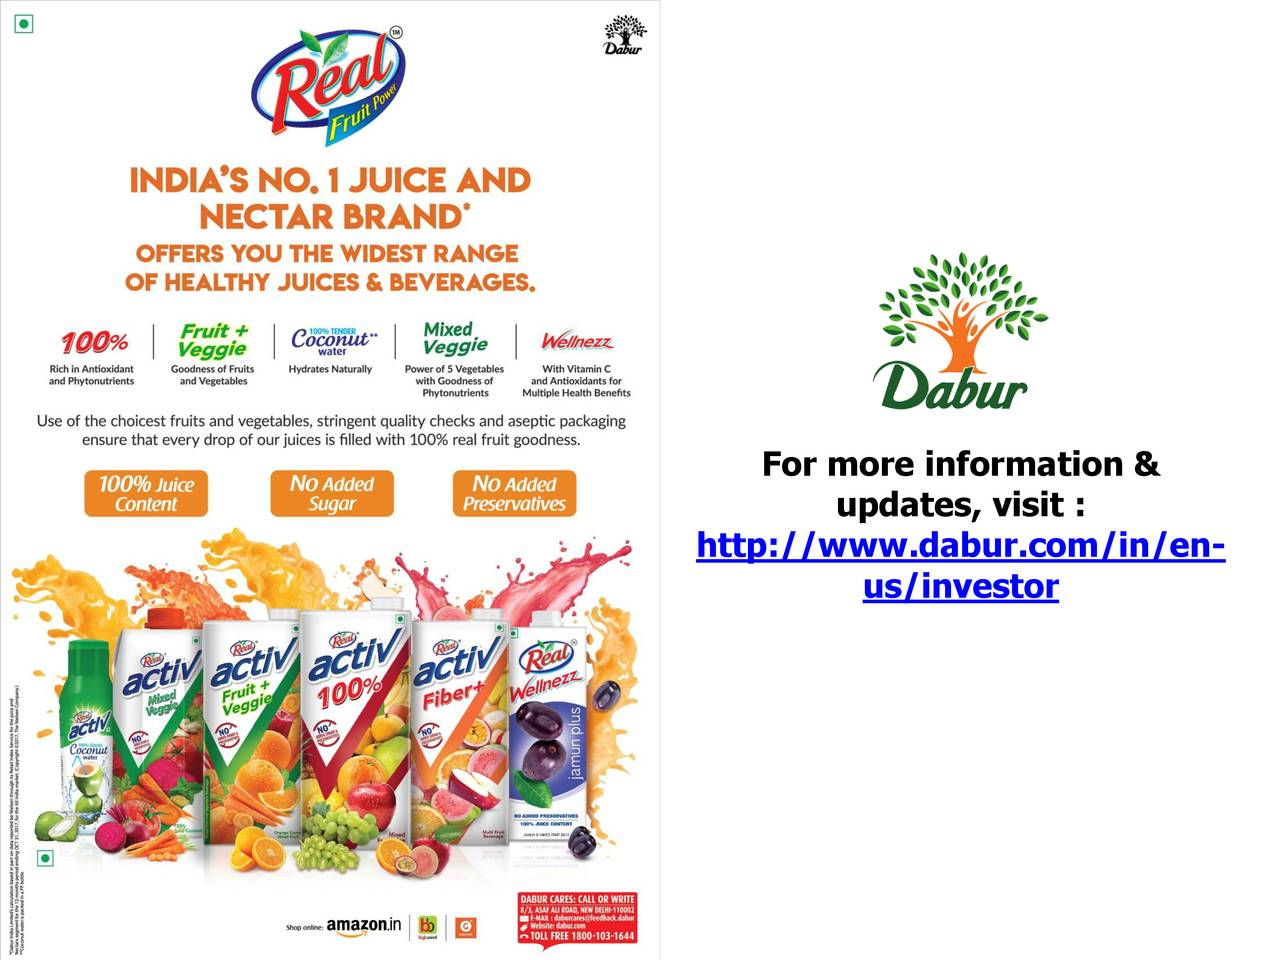 annual report fro dabur india limited For dabur india limited dr anand c burman, chairman pd narang, whole-time director sunil duggal, whole-time director ak jain , senior we report that the condensed consolidated financial statements have been prepared by the dabur india ltd's management in accordance with the.